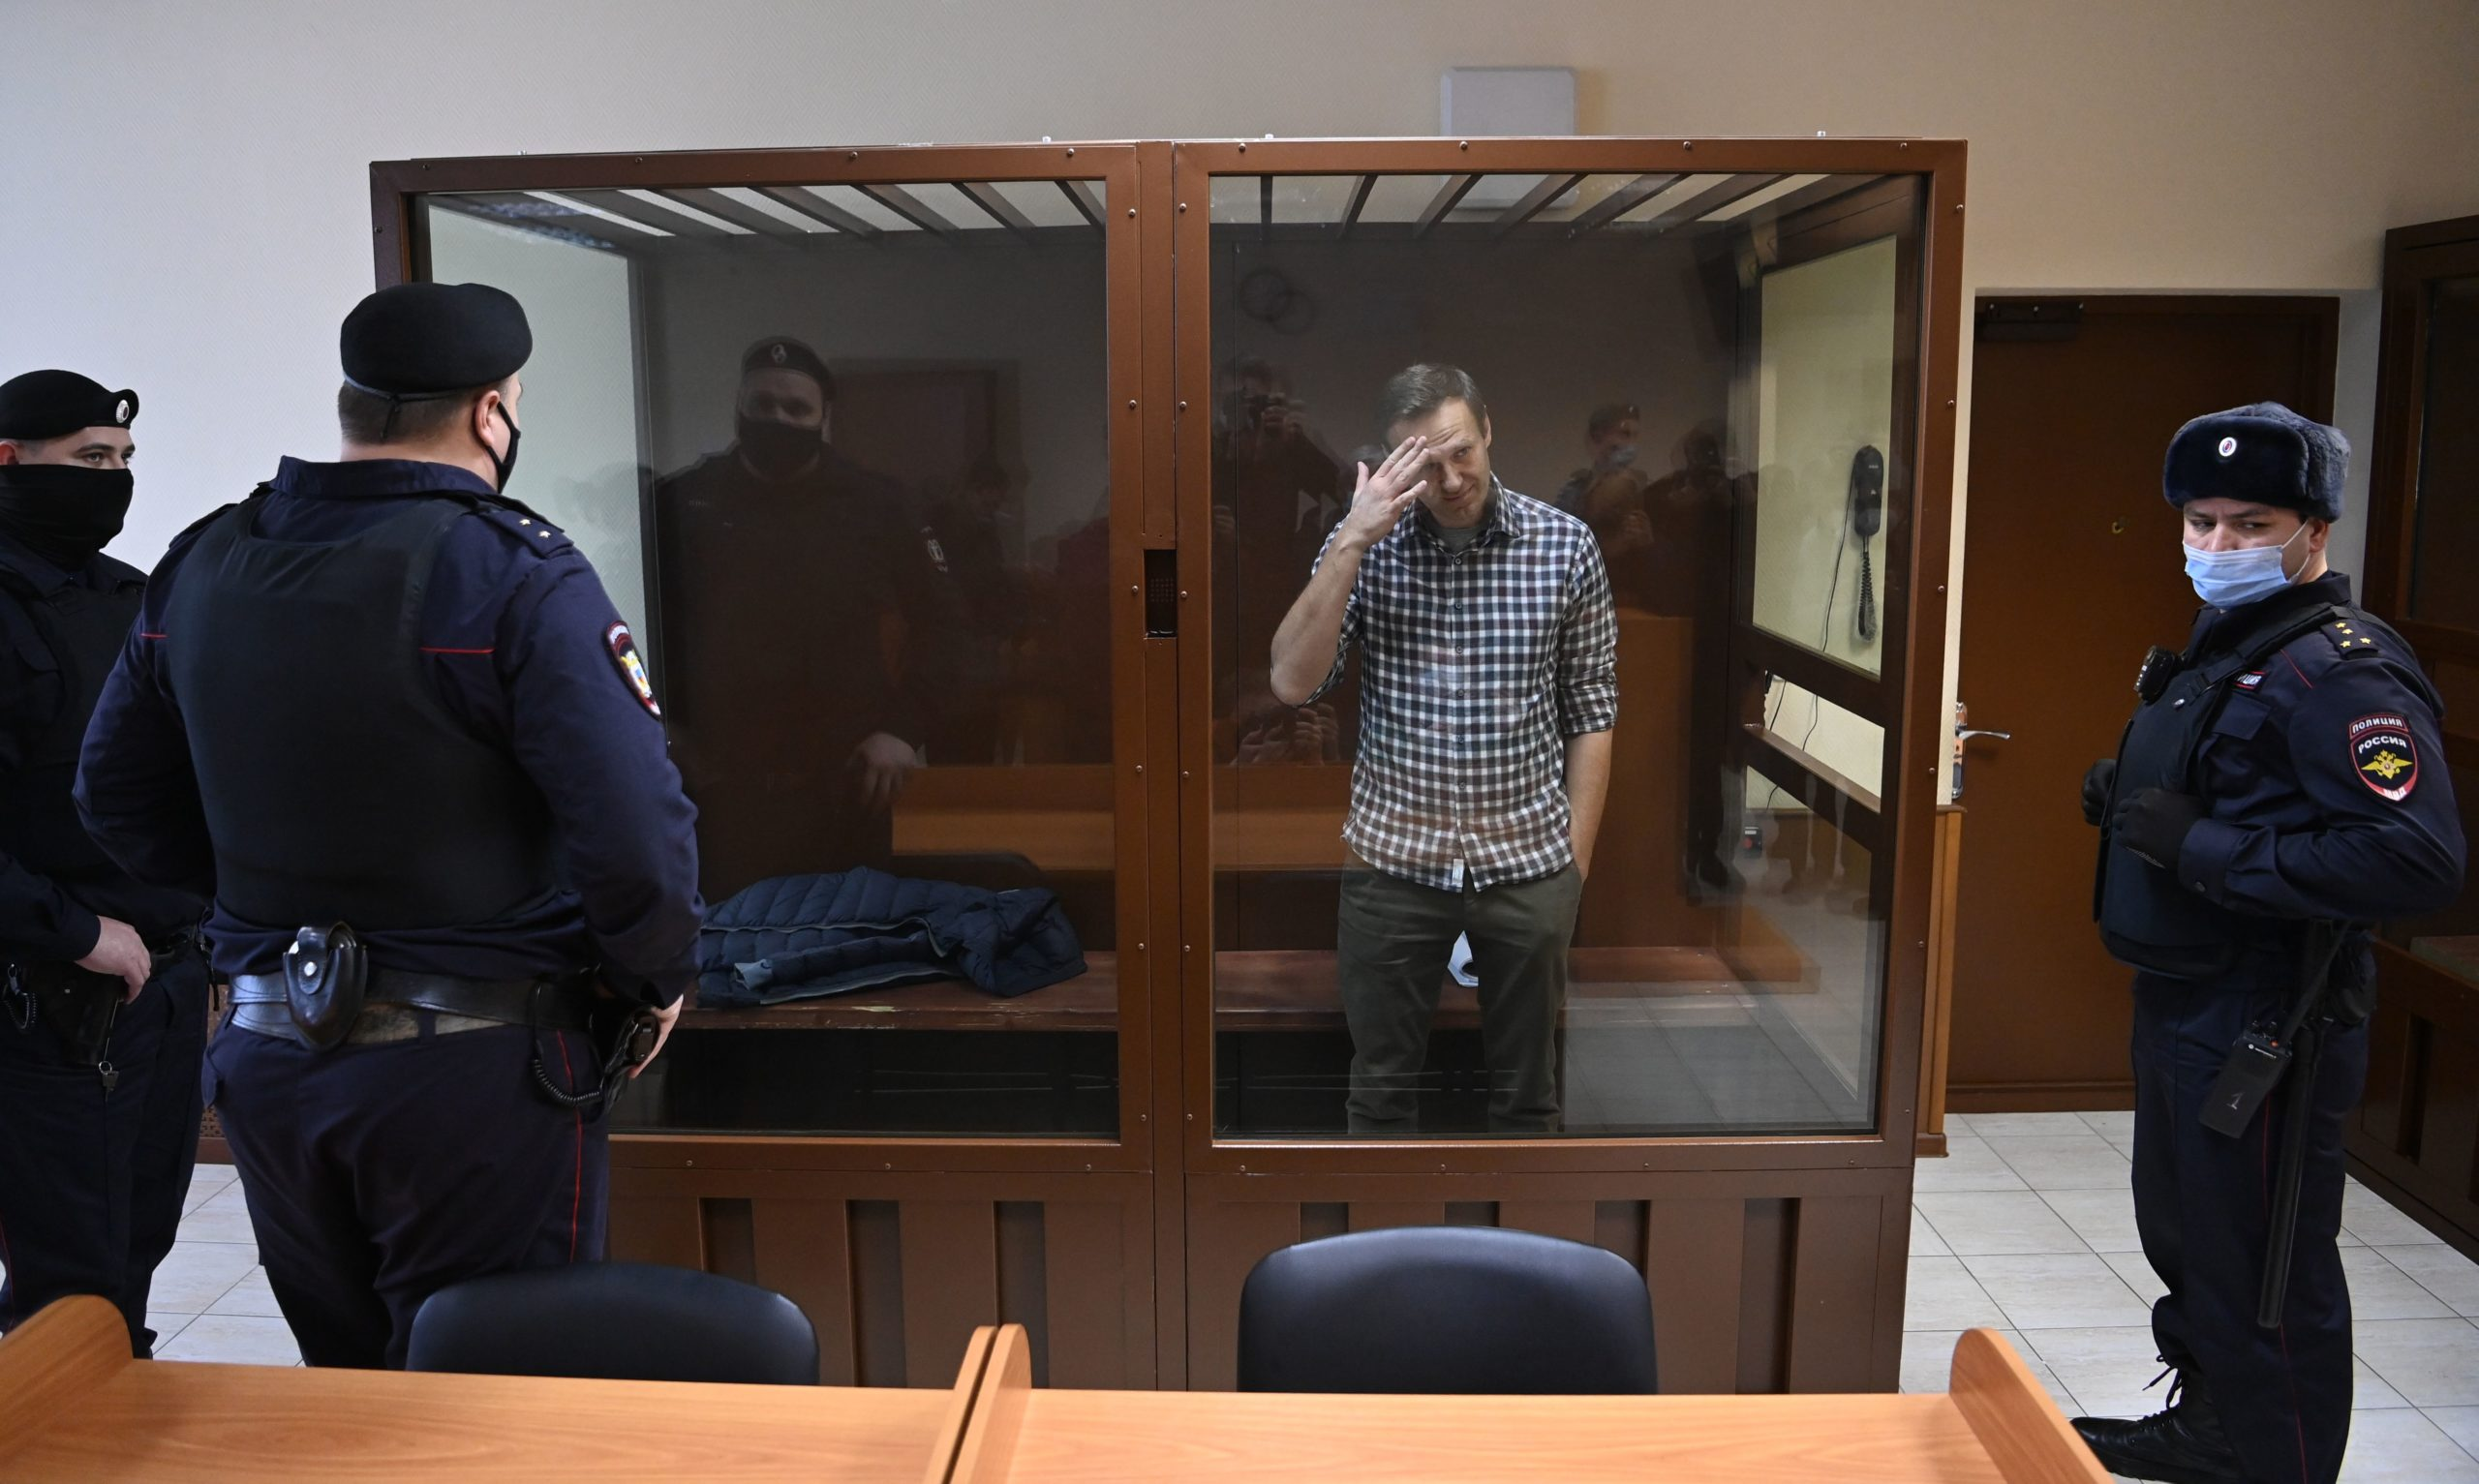 Russian opposition leader Alexei Navalny stands inside a glass cell during his court hearing Saturday. (Kirill Kudryavtsev/AFP via Getty Images)